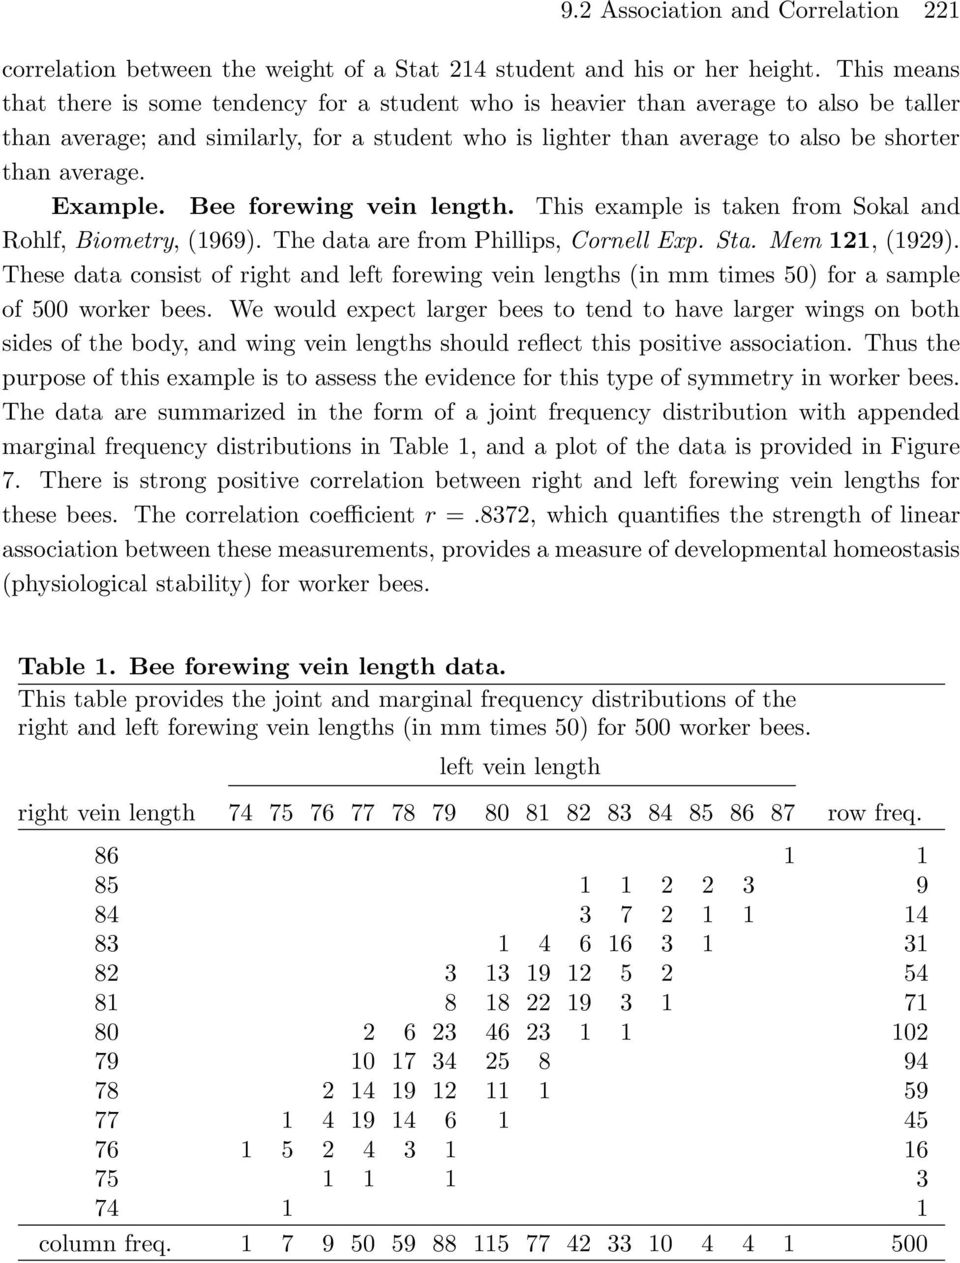 average. Eample. Bee forewing vein length. This eample is taken from Sokal and Rohlf, Biometry, (1969). The data are from Phillips, Cornell Ep. Sta. Mem 121, (1929).